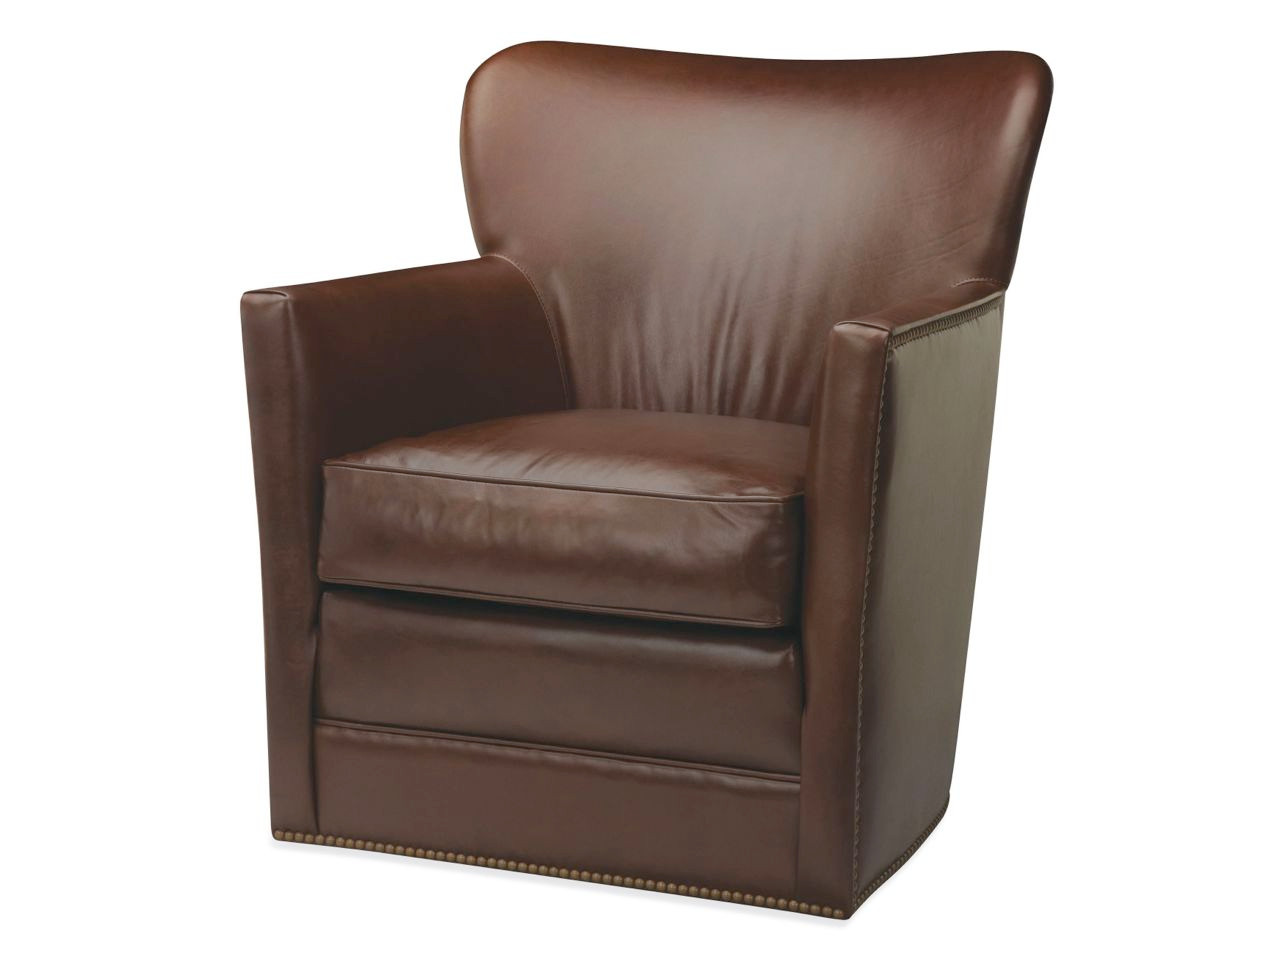 Marvelous Cooper Leather Swivel Chair Leather Swivel Chairs Swivel Andrewgaddart Wooden Chair Designs For Living Room Andrewgaddartcom